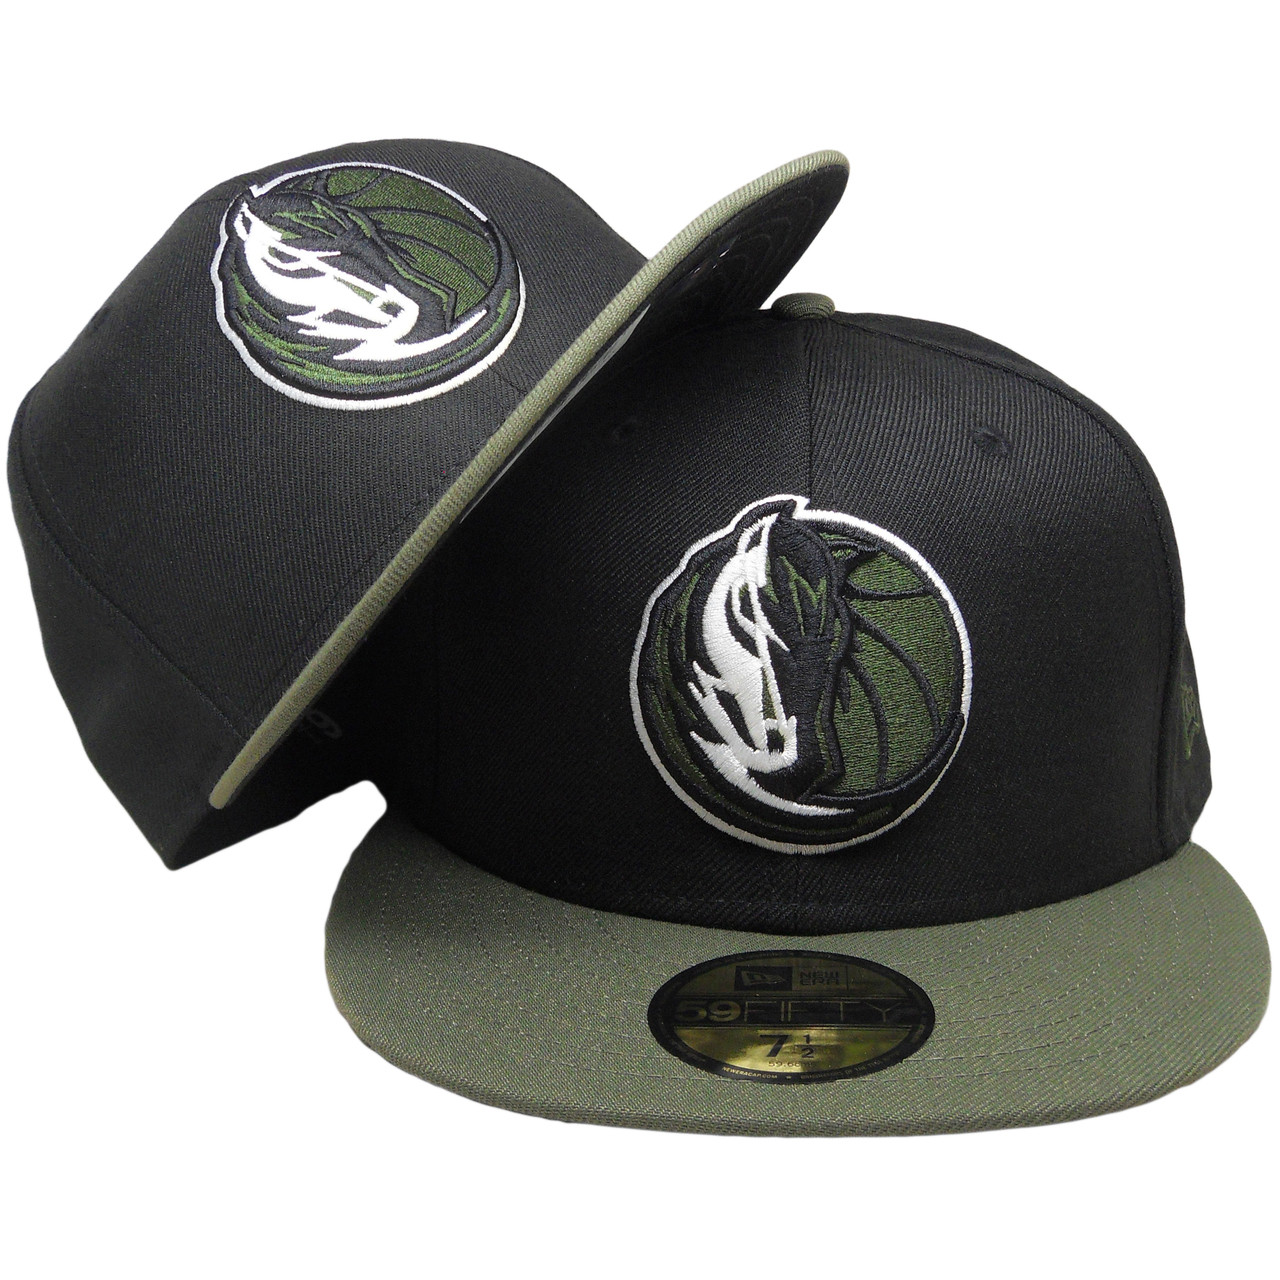 meet 1ef3e 93a93 ... purchase dallas mavericks new era custom 59fifty fitted hat black olive  green whit. larger more